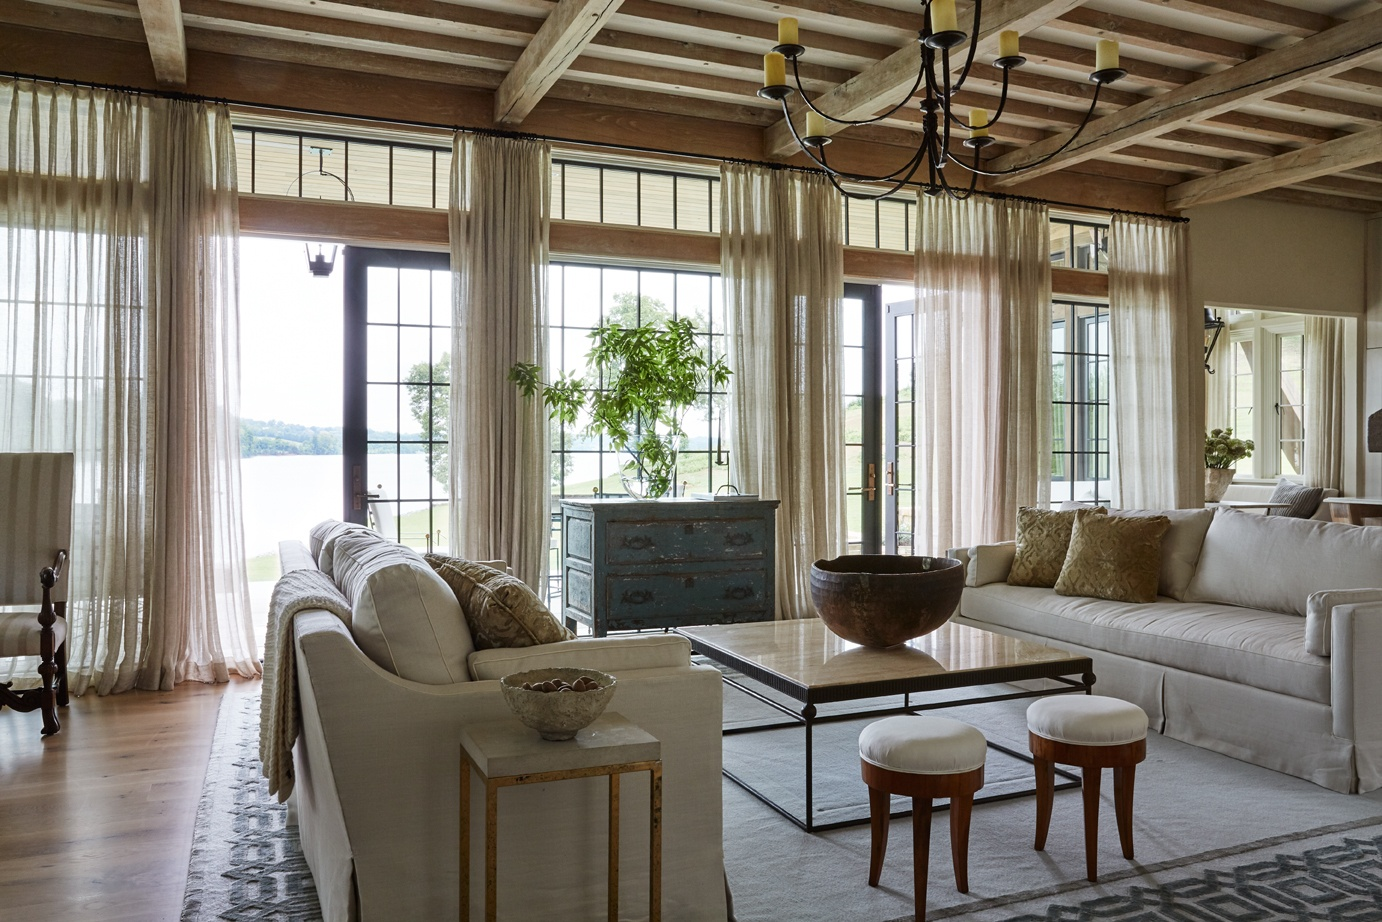 Jeffrey Dungan rooms livig room with french doors and beams